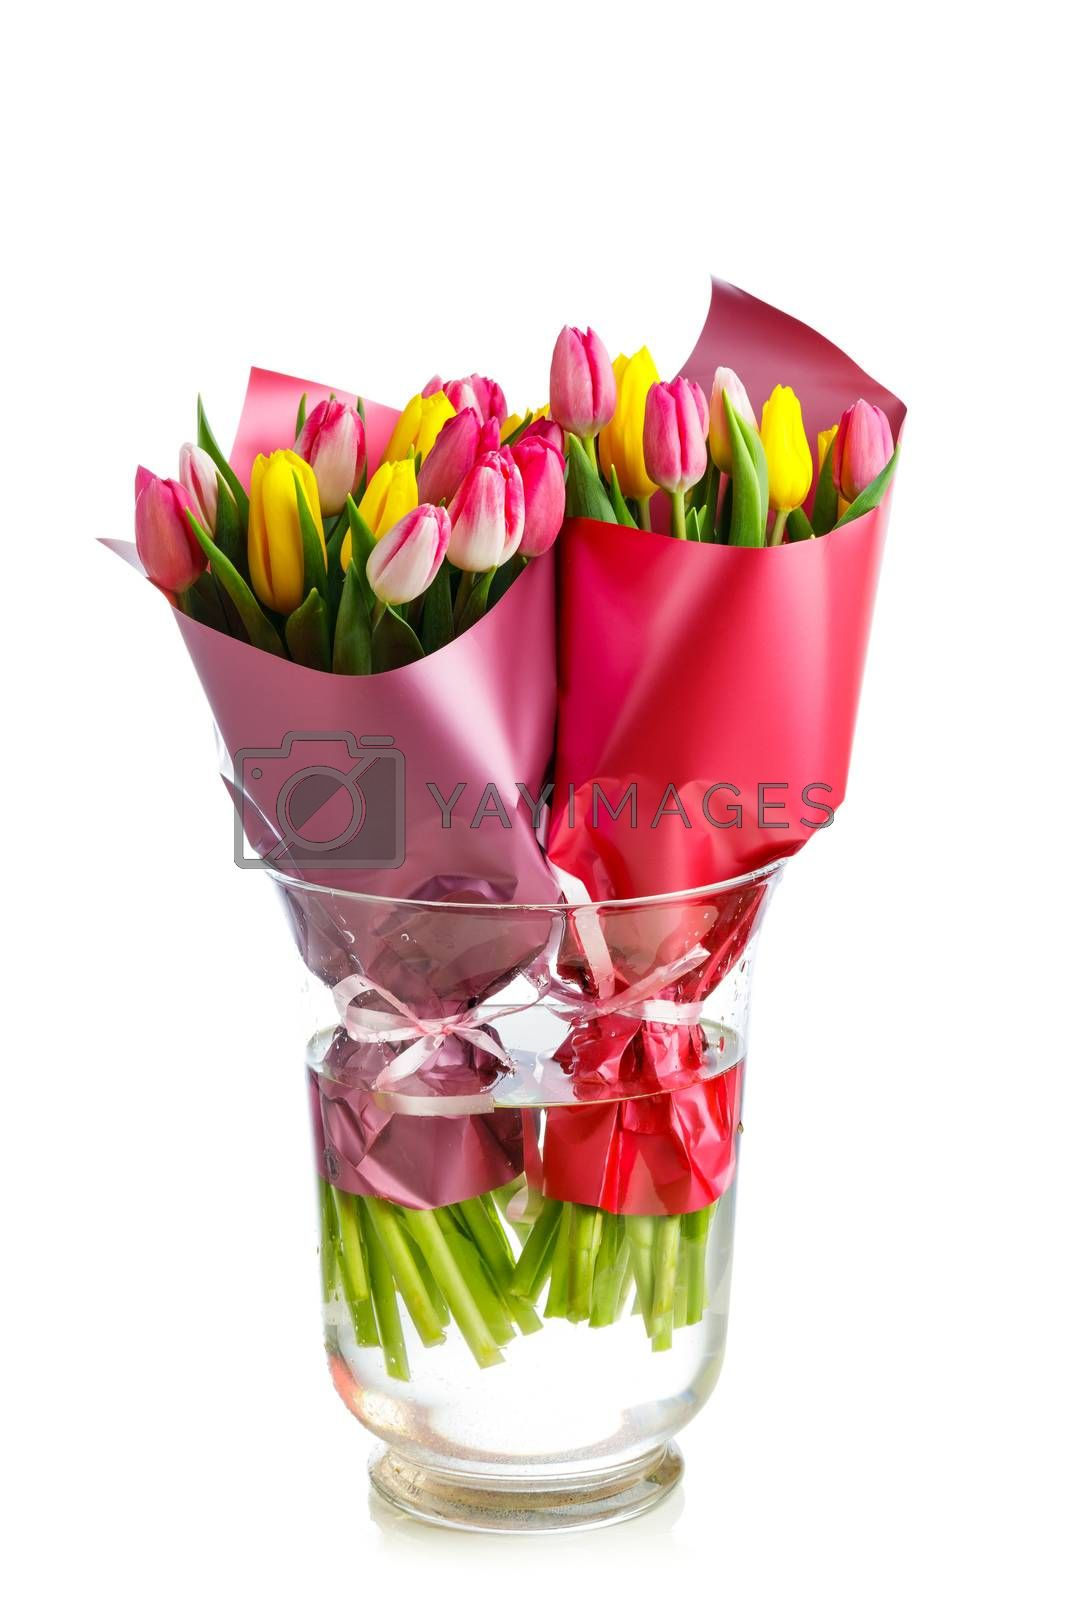 two bouquets of tulip flowers in a glass vase, isolated on white